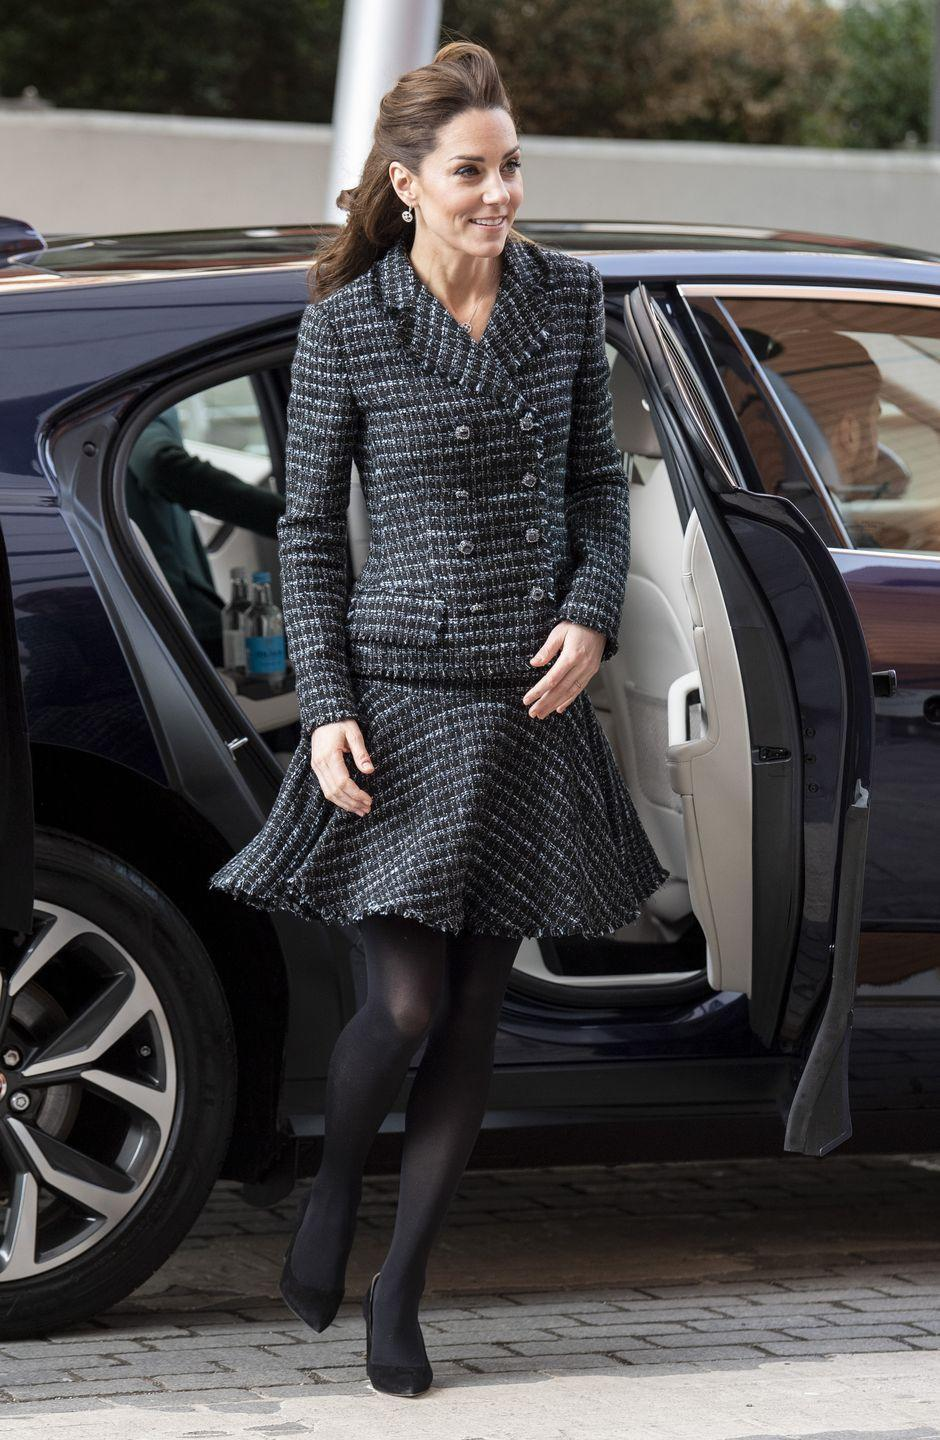 """<p>The Duchess arrived at <a href=""""https://www.townandcountrymag.com/society/tradition/a30686555/kate-middleton-dolce-gabbana-skirt-suit-evelina-photos/"""" rel=""""nofollow noopener"""" target=""""_blank"""" data-ylk=""""slk:Evelina Children's Hospital to attend a workshop run by the National Portrait Gallery"""" class=""""link rapid-noclick-resp"""">Evelina Children's Hospital to attend a workshop run by the National Portrait Gallery</a>, wearing a Dolce & Gabbana skirt suit and <a href=""""https://go.redirectingat.com?id=74968X1596630&url=https%3A%2F%2Fwww.net-a-porter.com%2Fus%2Fen%2Fproduct%2F1202165&sref=https%3A%2F%2Fwww.redbookmag.com%2Flife%2Fg34824194%2Fkate-middleton-fashion%2F"""" rel=""""nofollow noopener"""" target=""""_blank"""" data-ylk=""""slk:Gianvito Rossi pumps"""" class=""""link rapid-noclick-resp"""">Gianvito Rossi pumps</a>.</p>"""